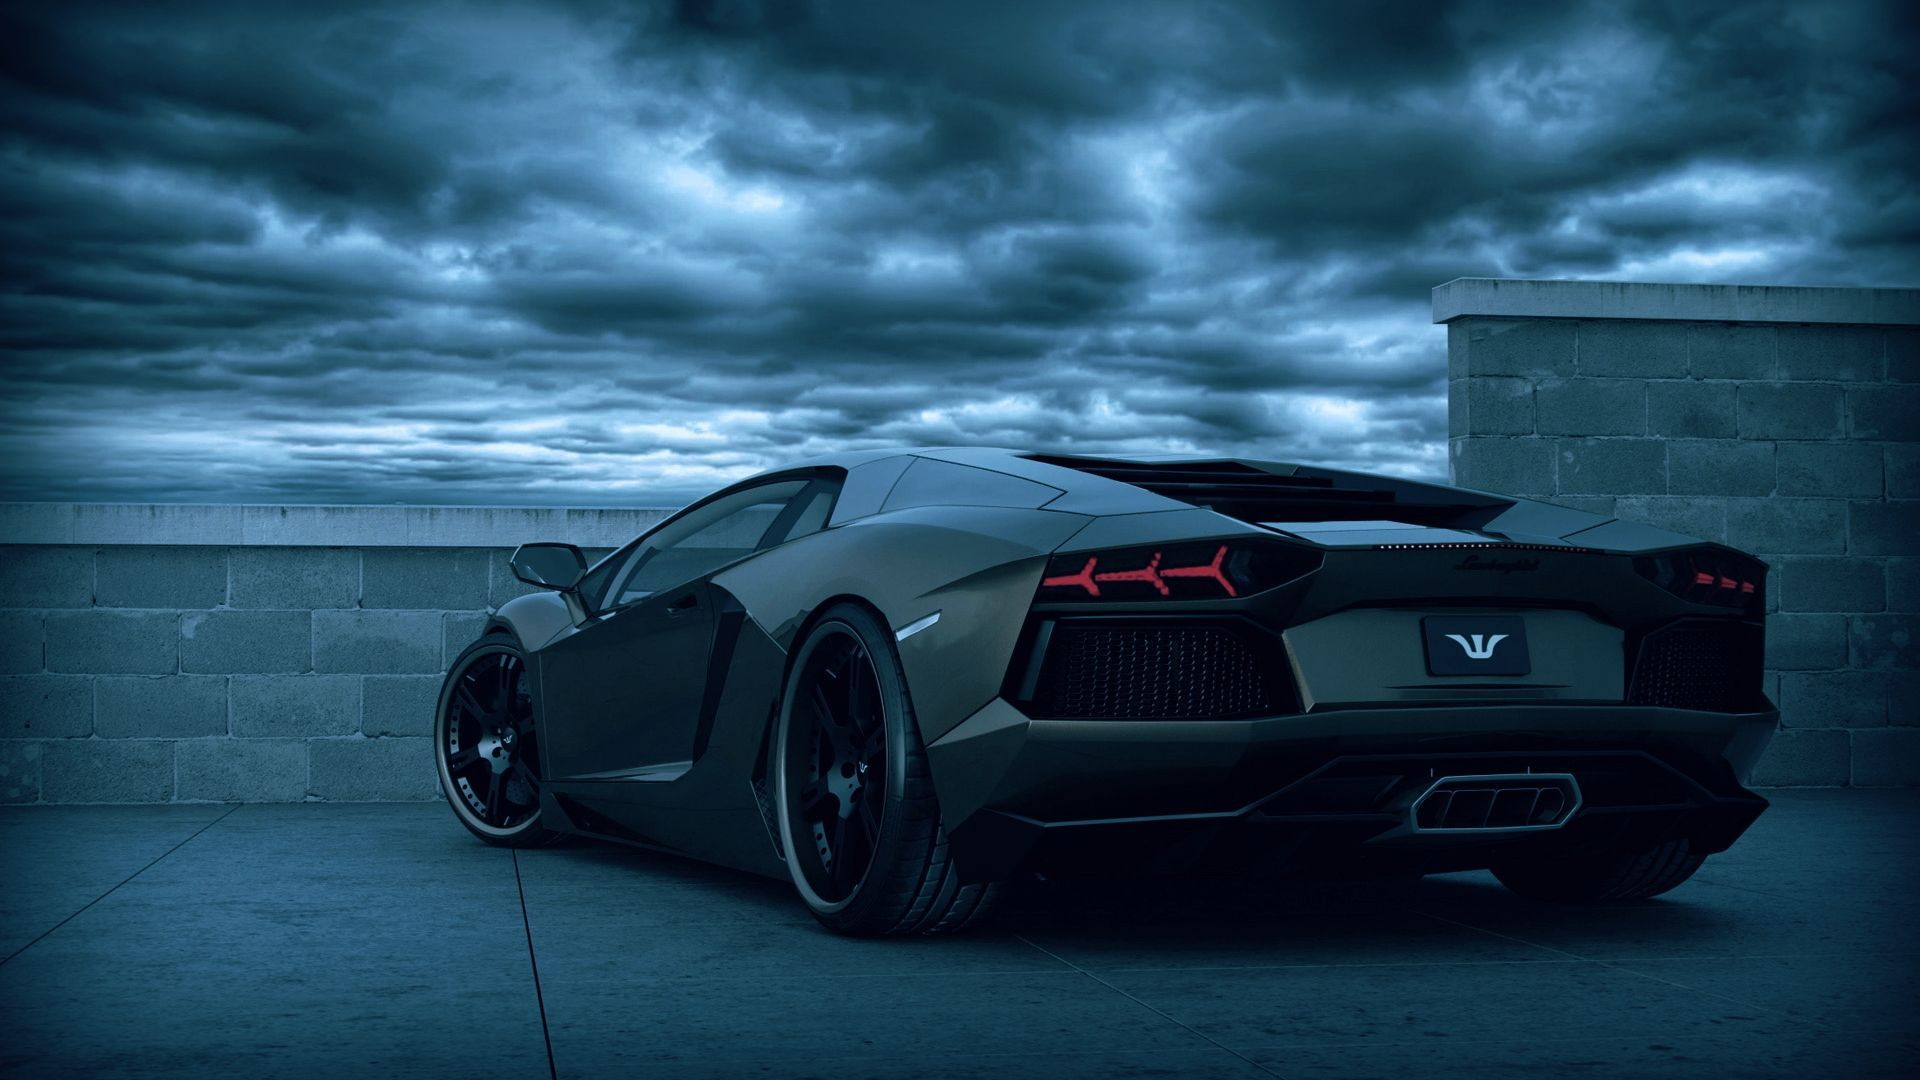 Cool Blue And Black Wallpapers Cool Black Lamborghini Wallpapers 1920x1080